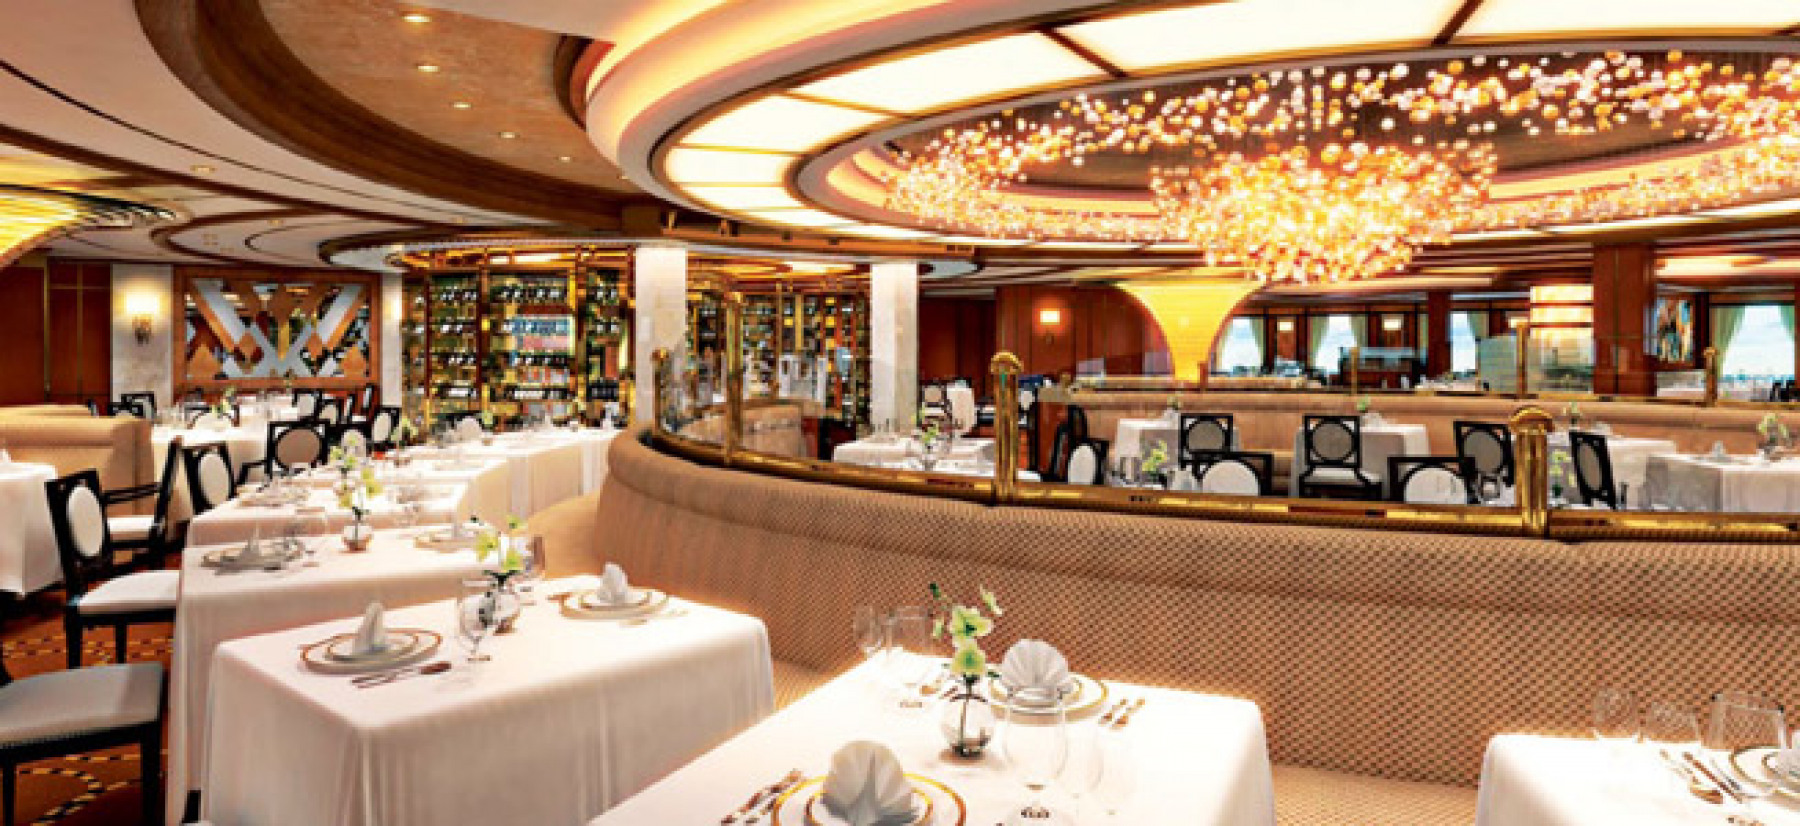 Princess Cruises Royal Class Interior traditional dining.jpg